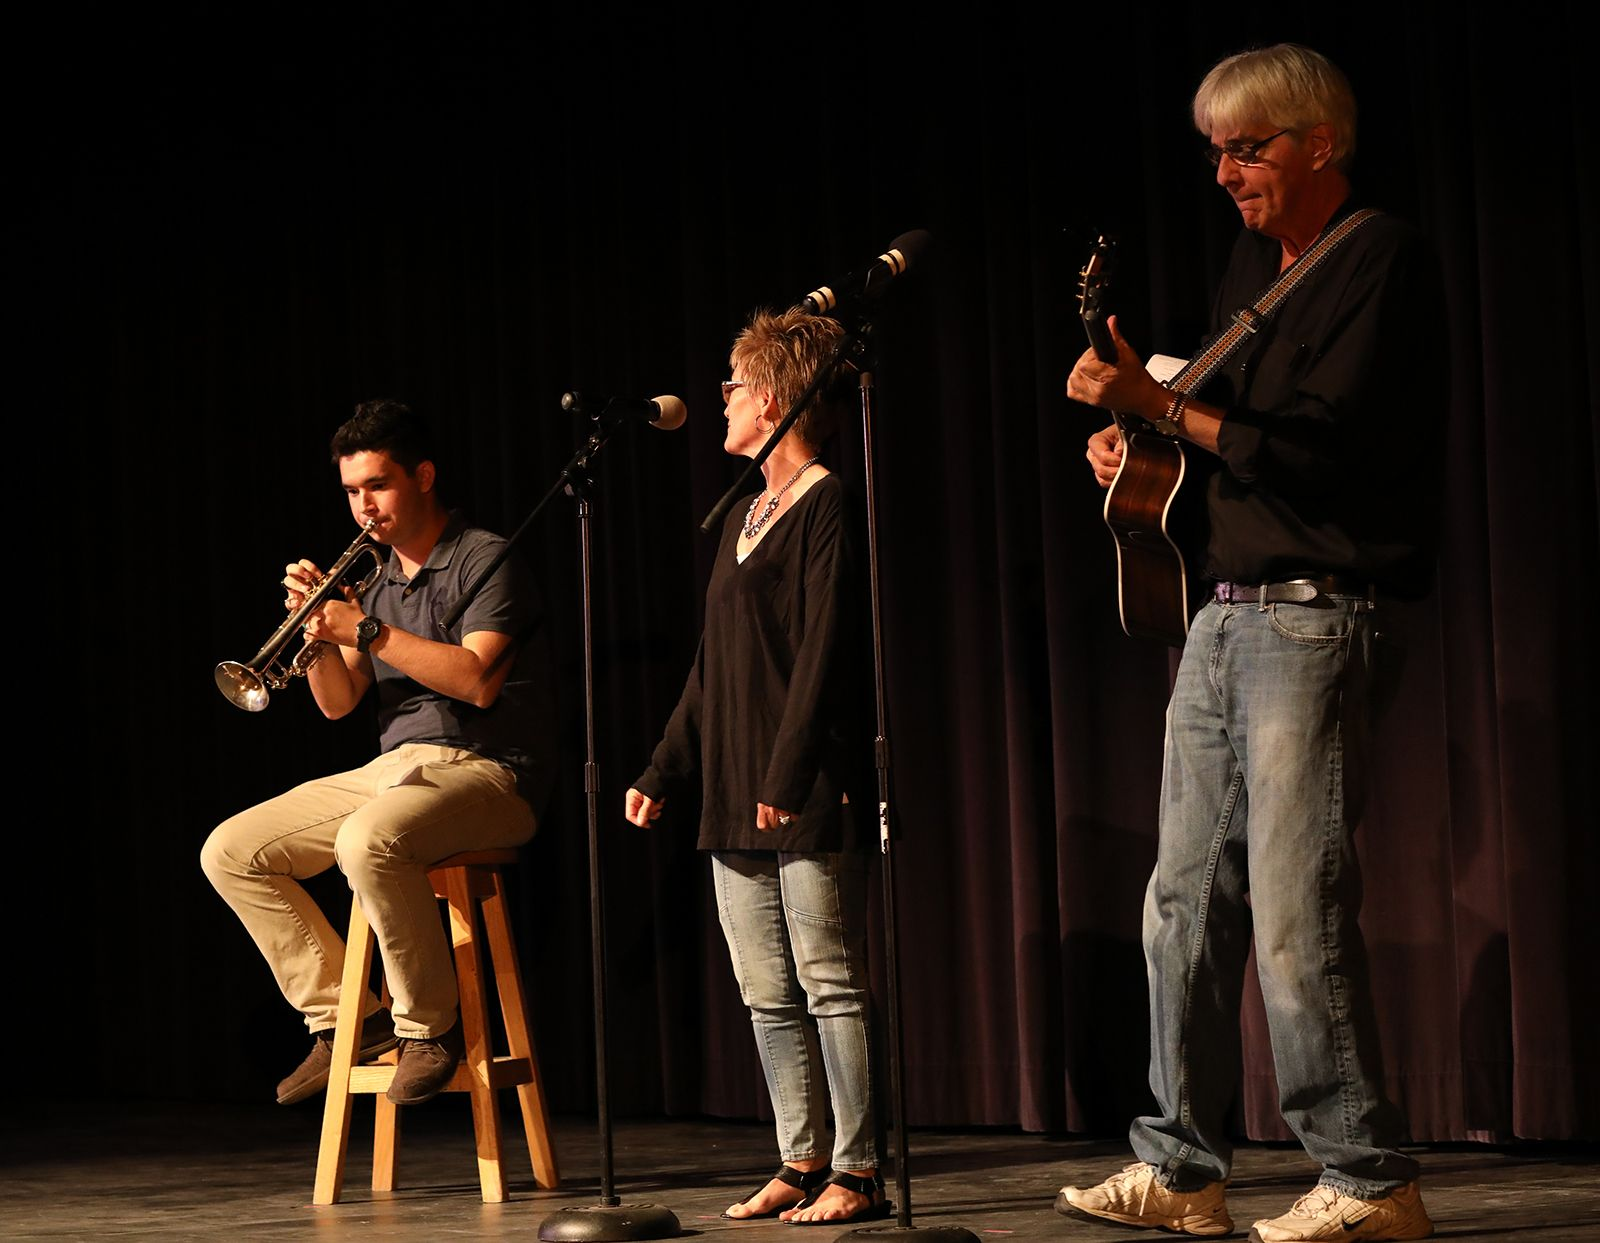 Carter and Mr. Ahlin accompany Mrs. Vivio at the 2016 Fall Showcase